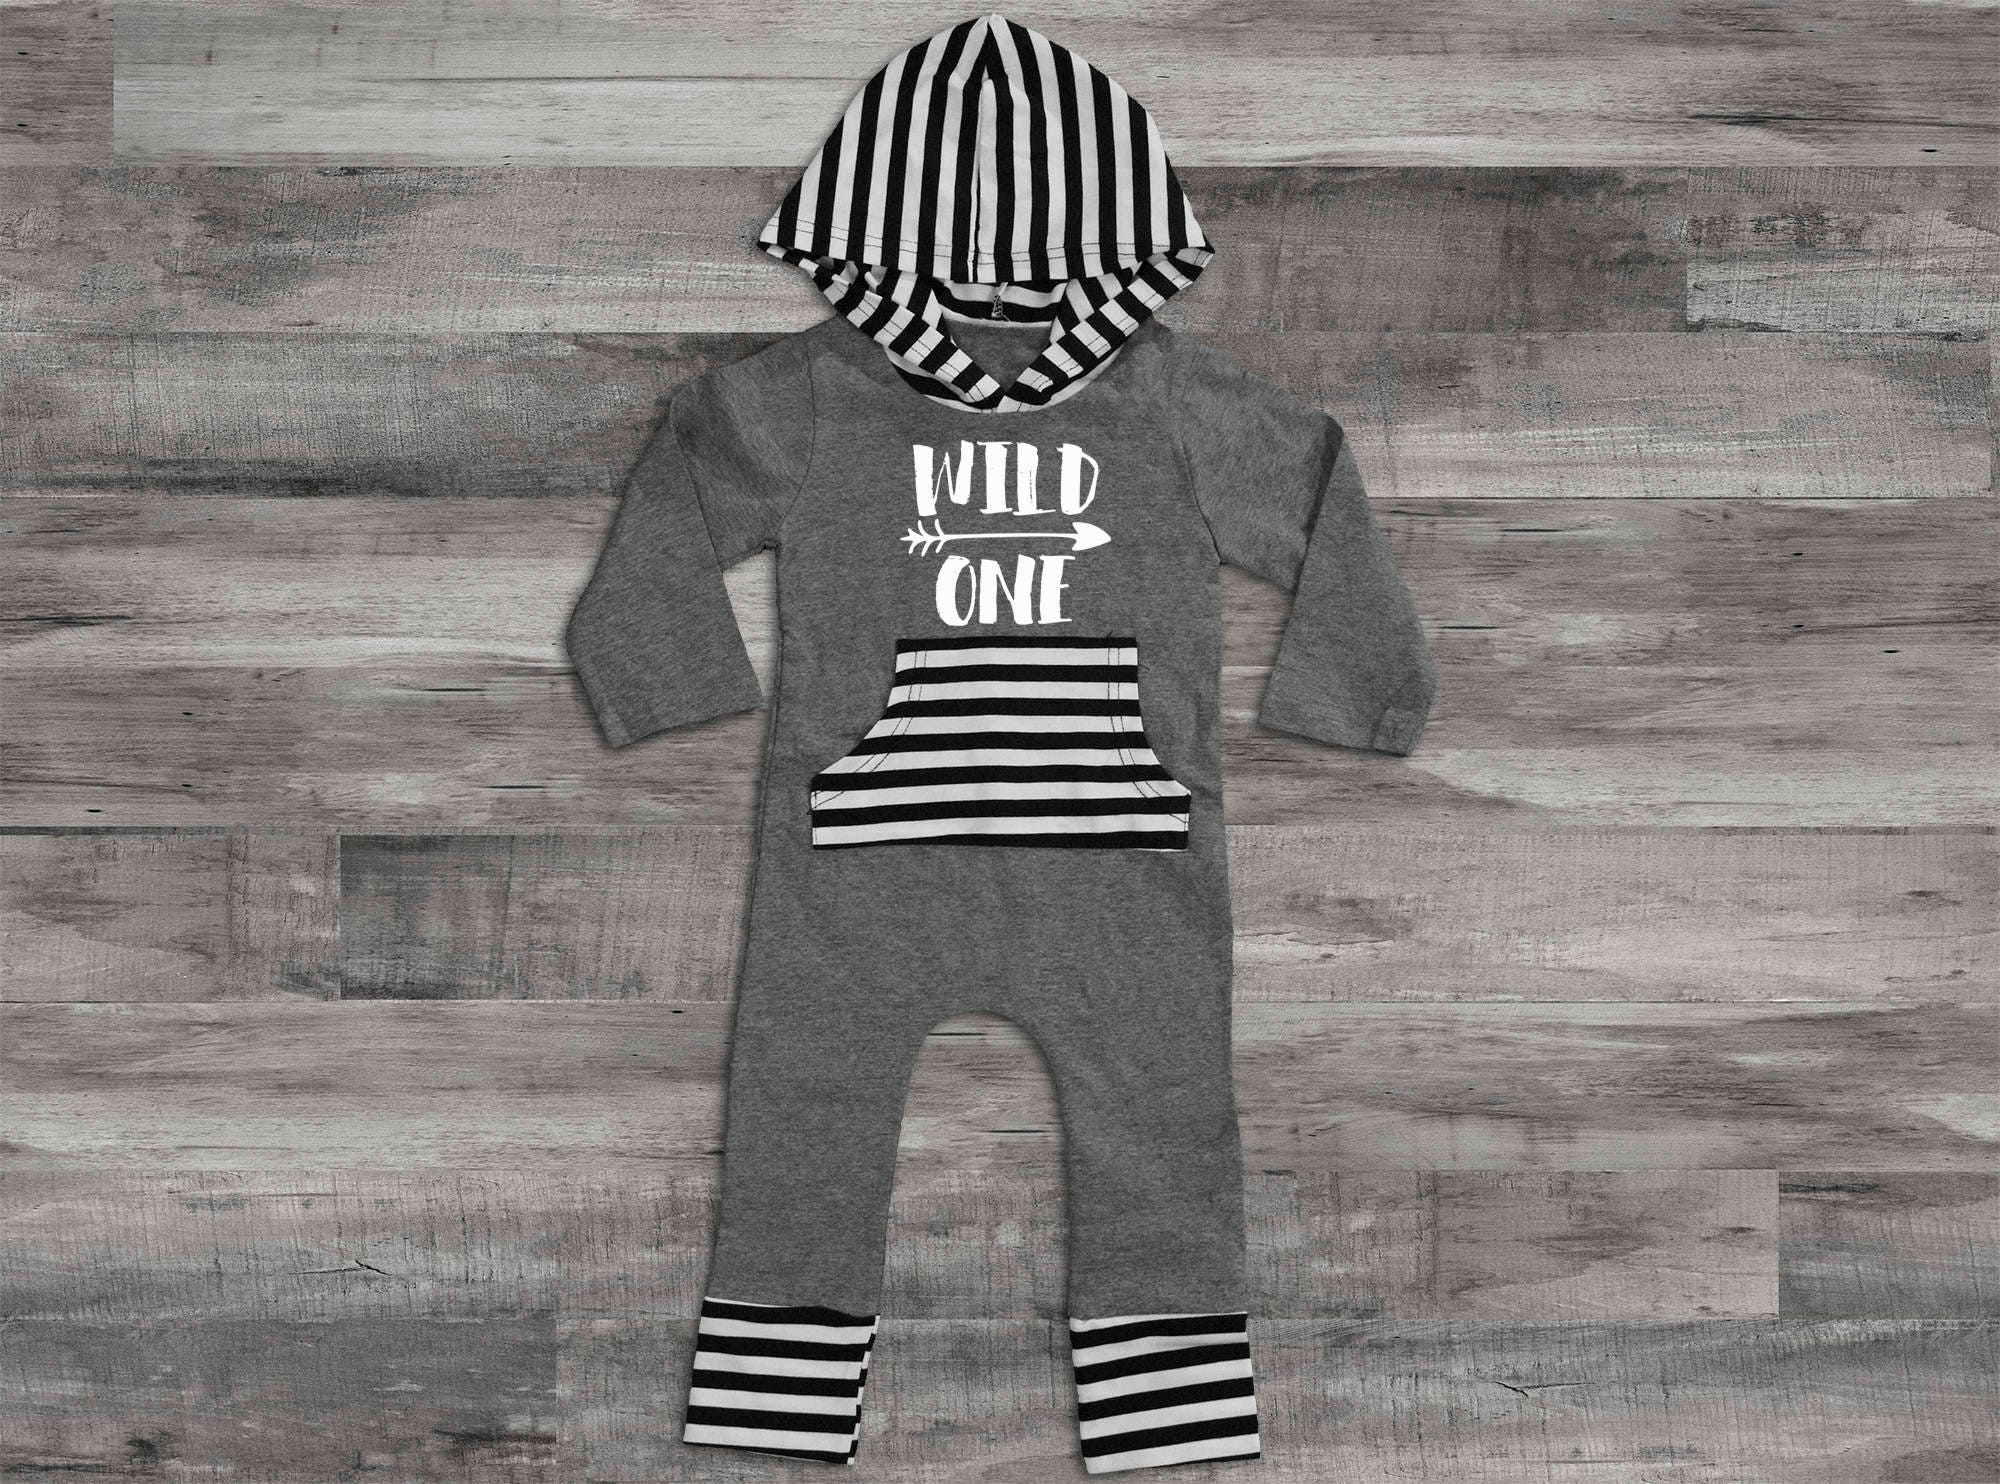 Baby Boy Clothes Wild One Birthday Outfit Romper Outfit1st